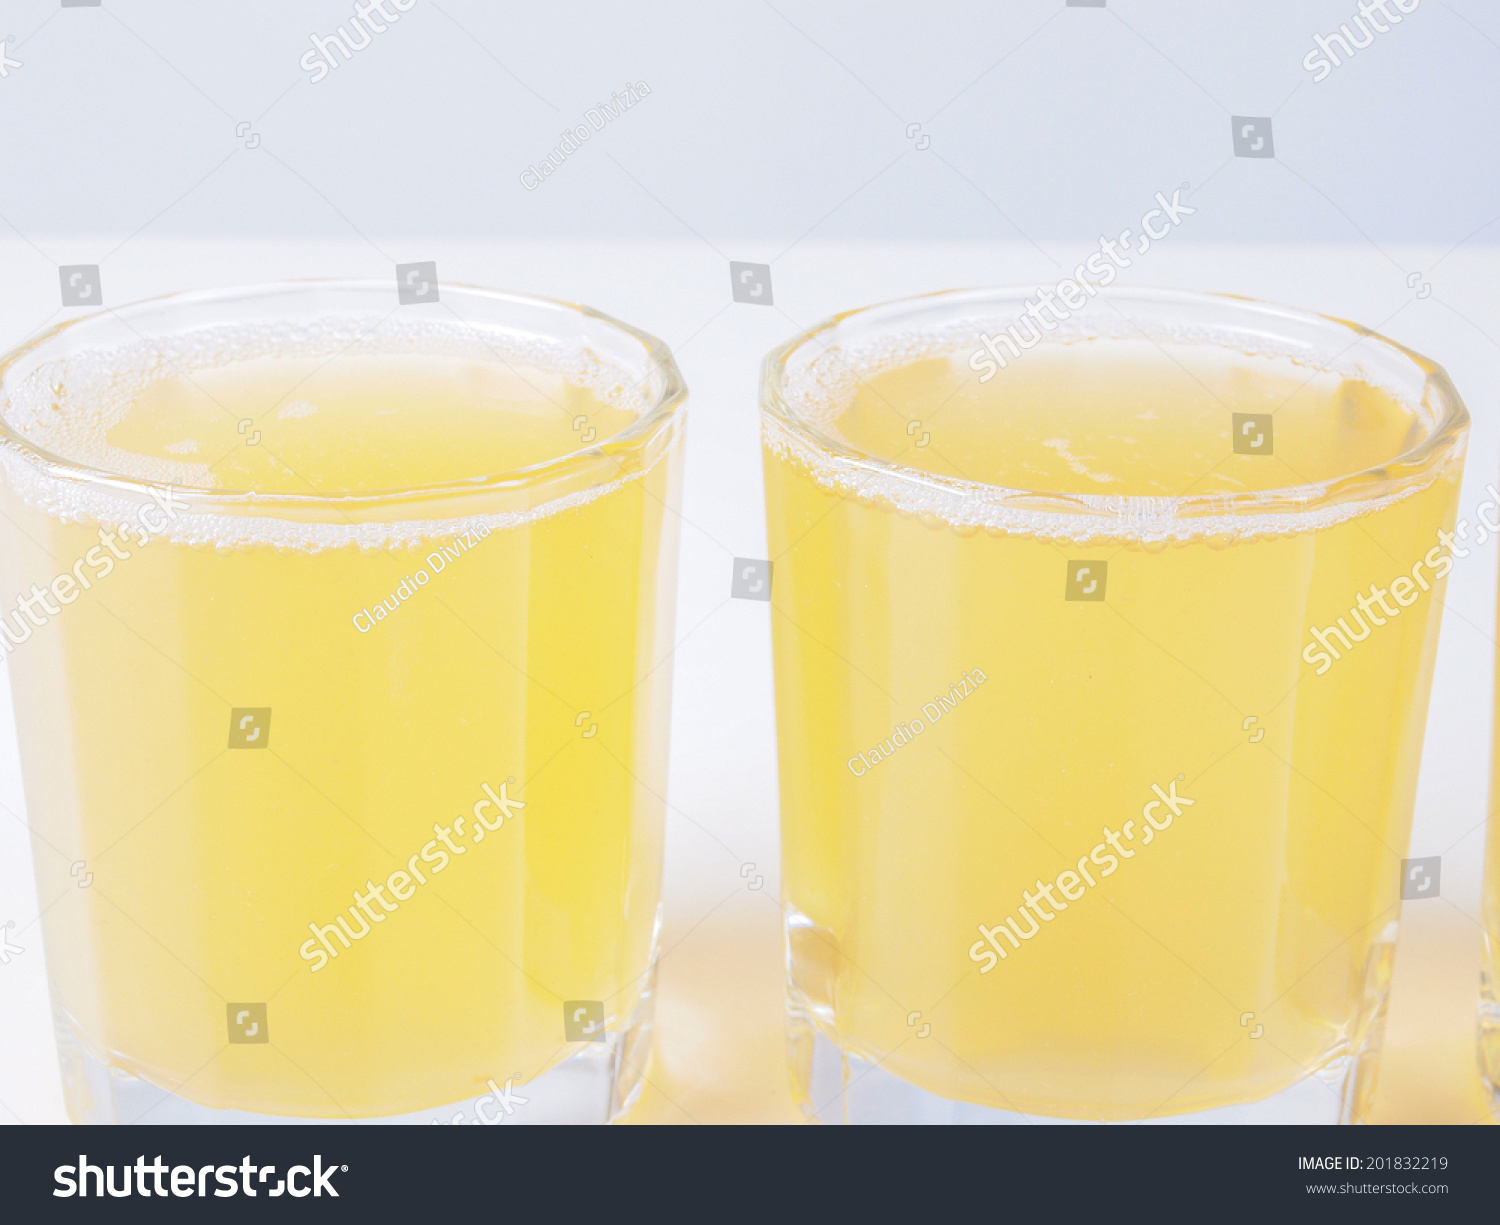 Glasses of pineapple juice on continental breakfast table